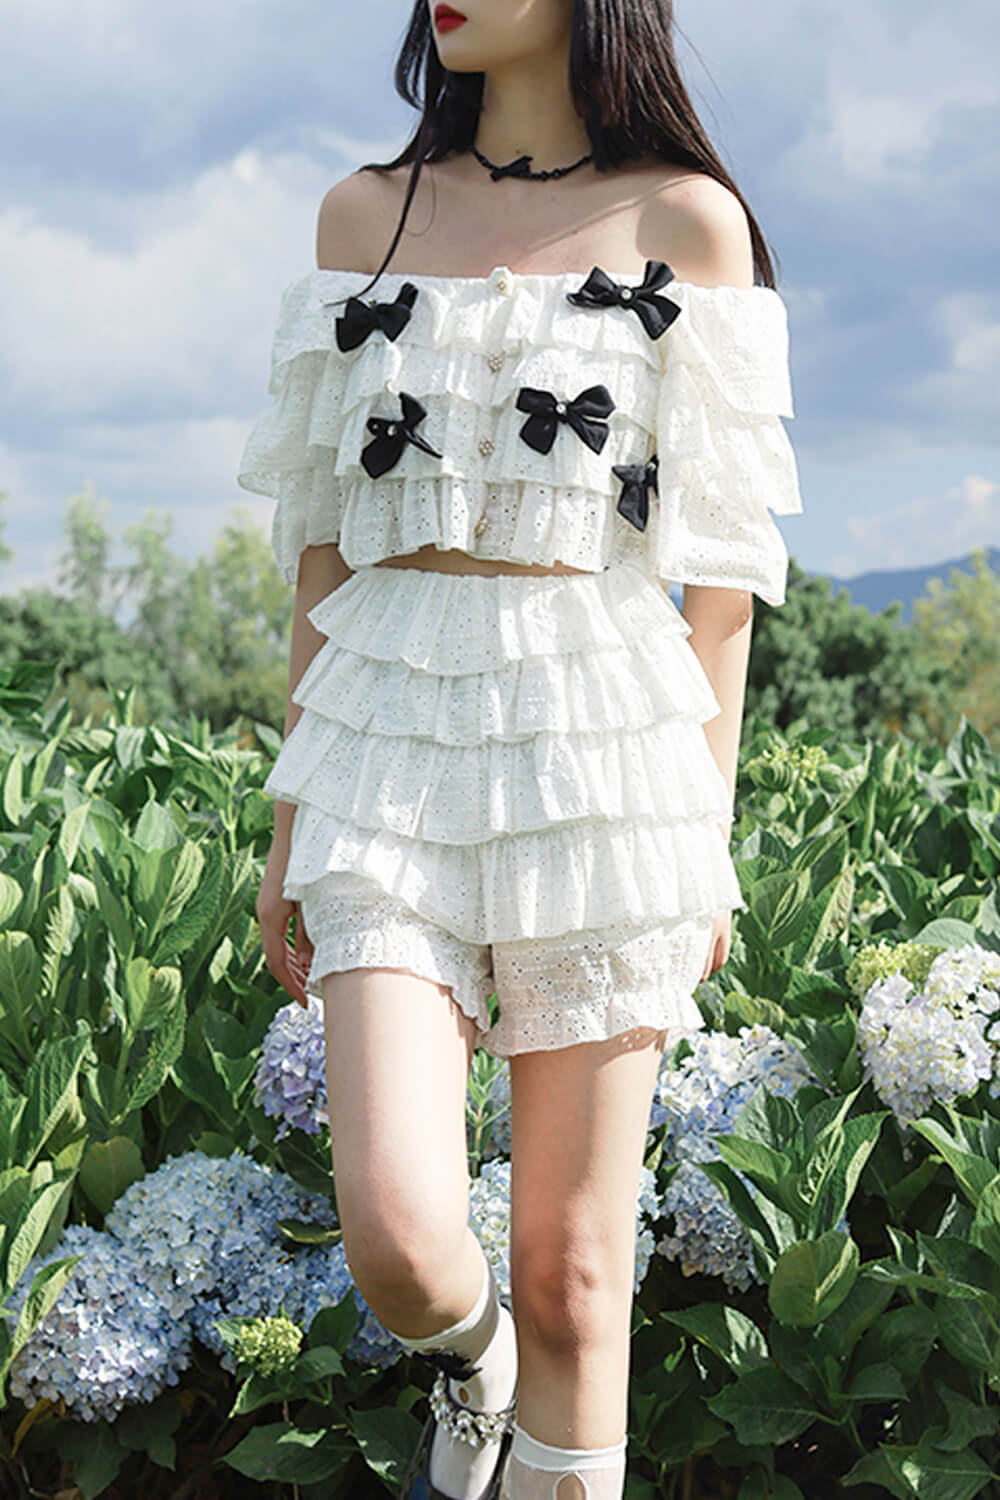 Multi Layer Ruffled Fairycore Top and Shorts